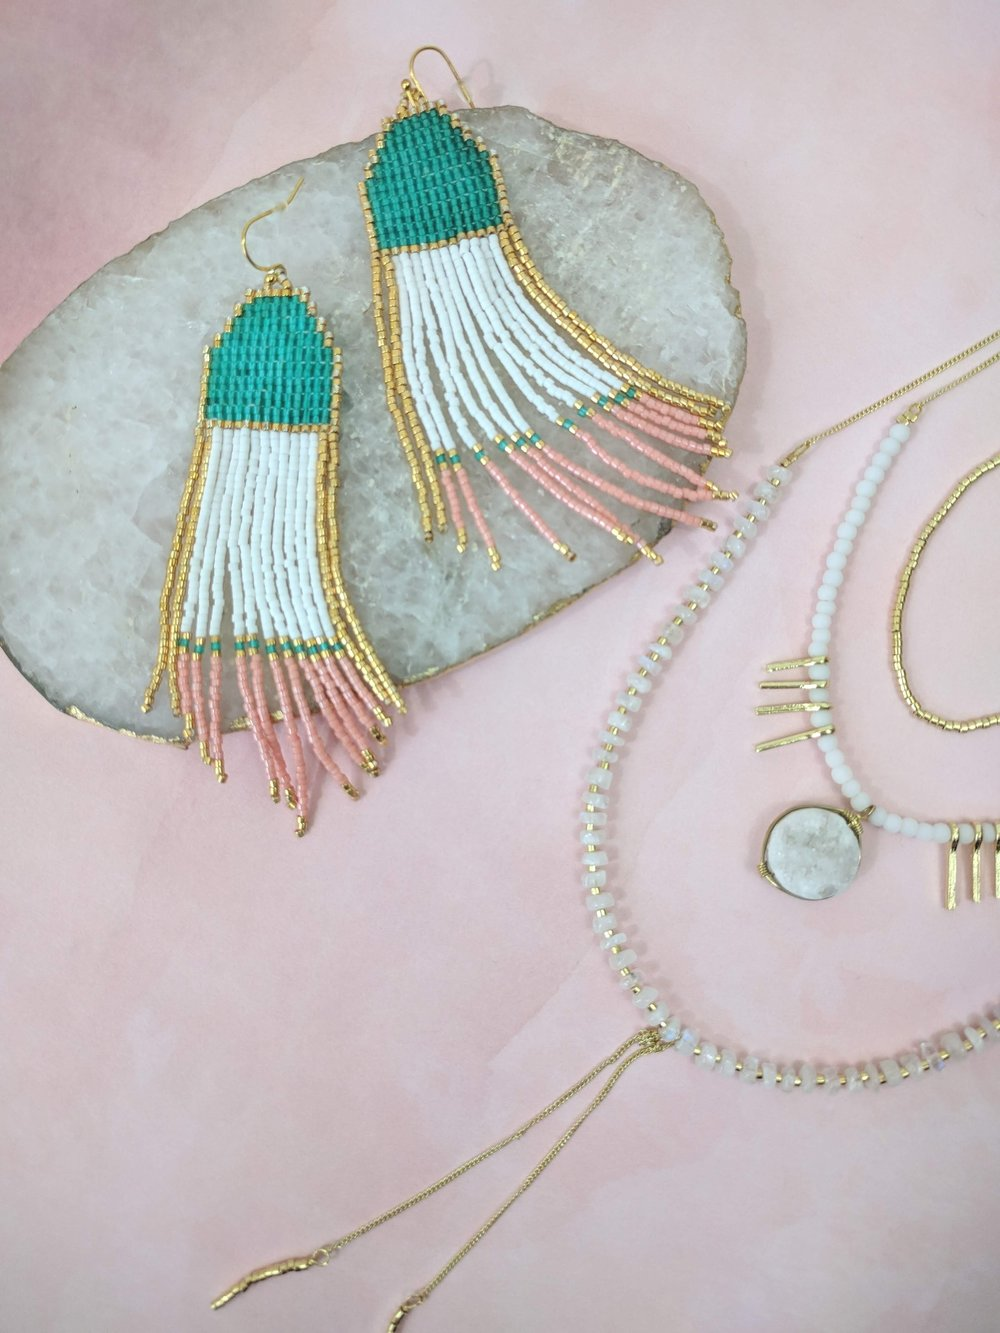 How to style big earrings with other jewelry (slide show). Pictured: Noonday Collection's fair trade Summer Skies Earrings, Aurora Necklace, and Gilded Stone Tray. #noondaystyle #noondaycollection